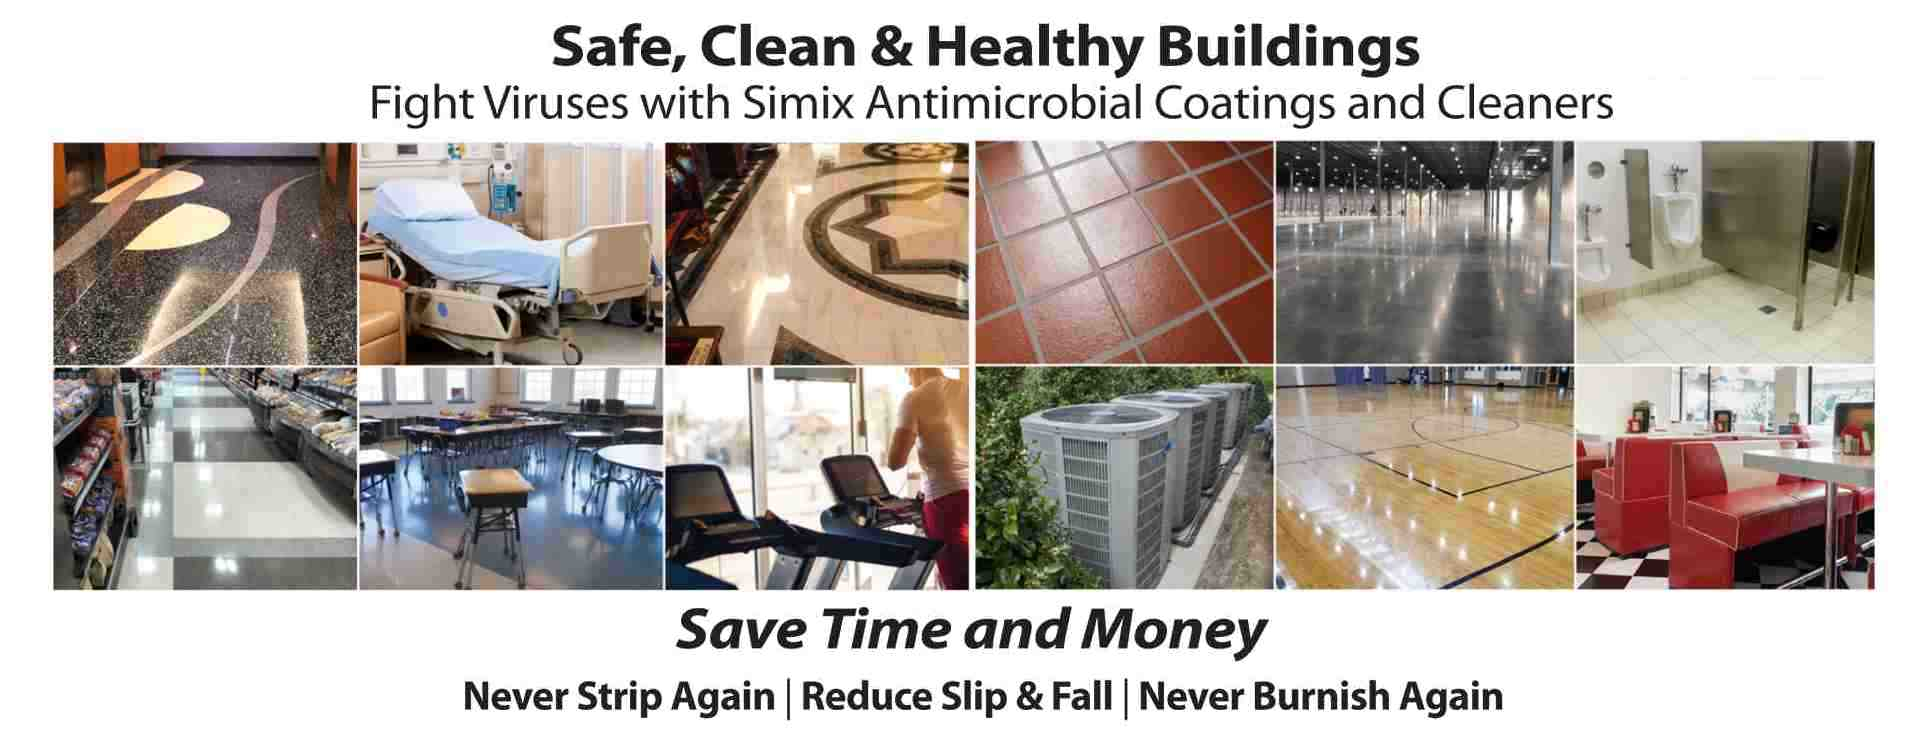 Fight Cornaviruses with Simix Clean and Sanitize all surfaces in one Step